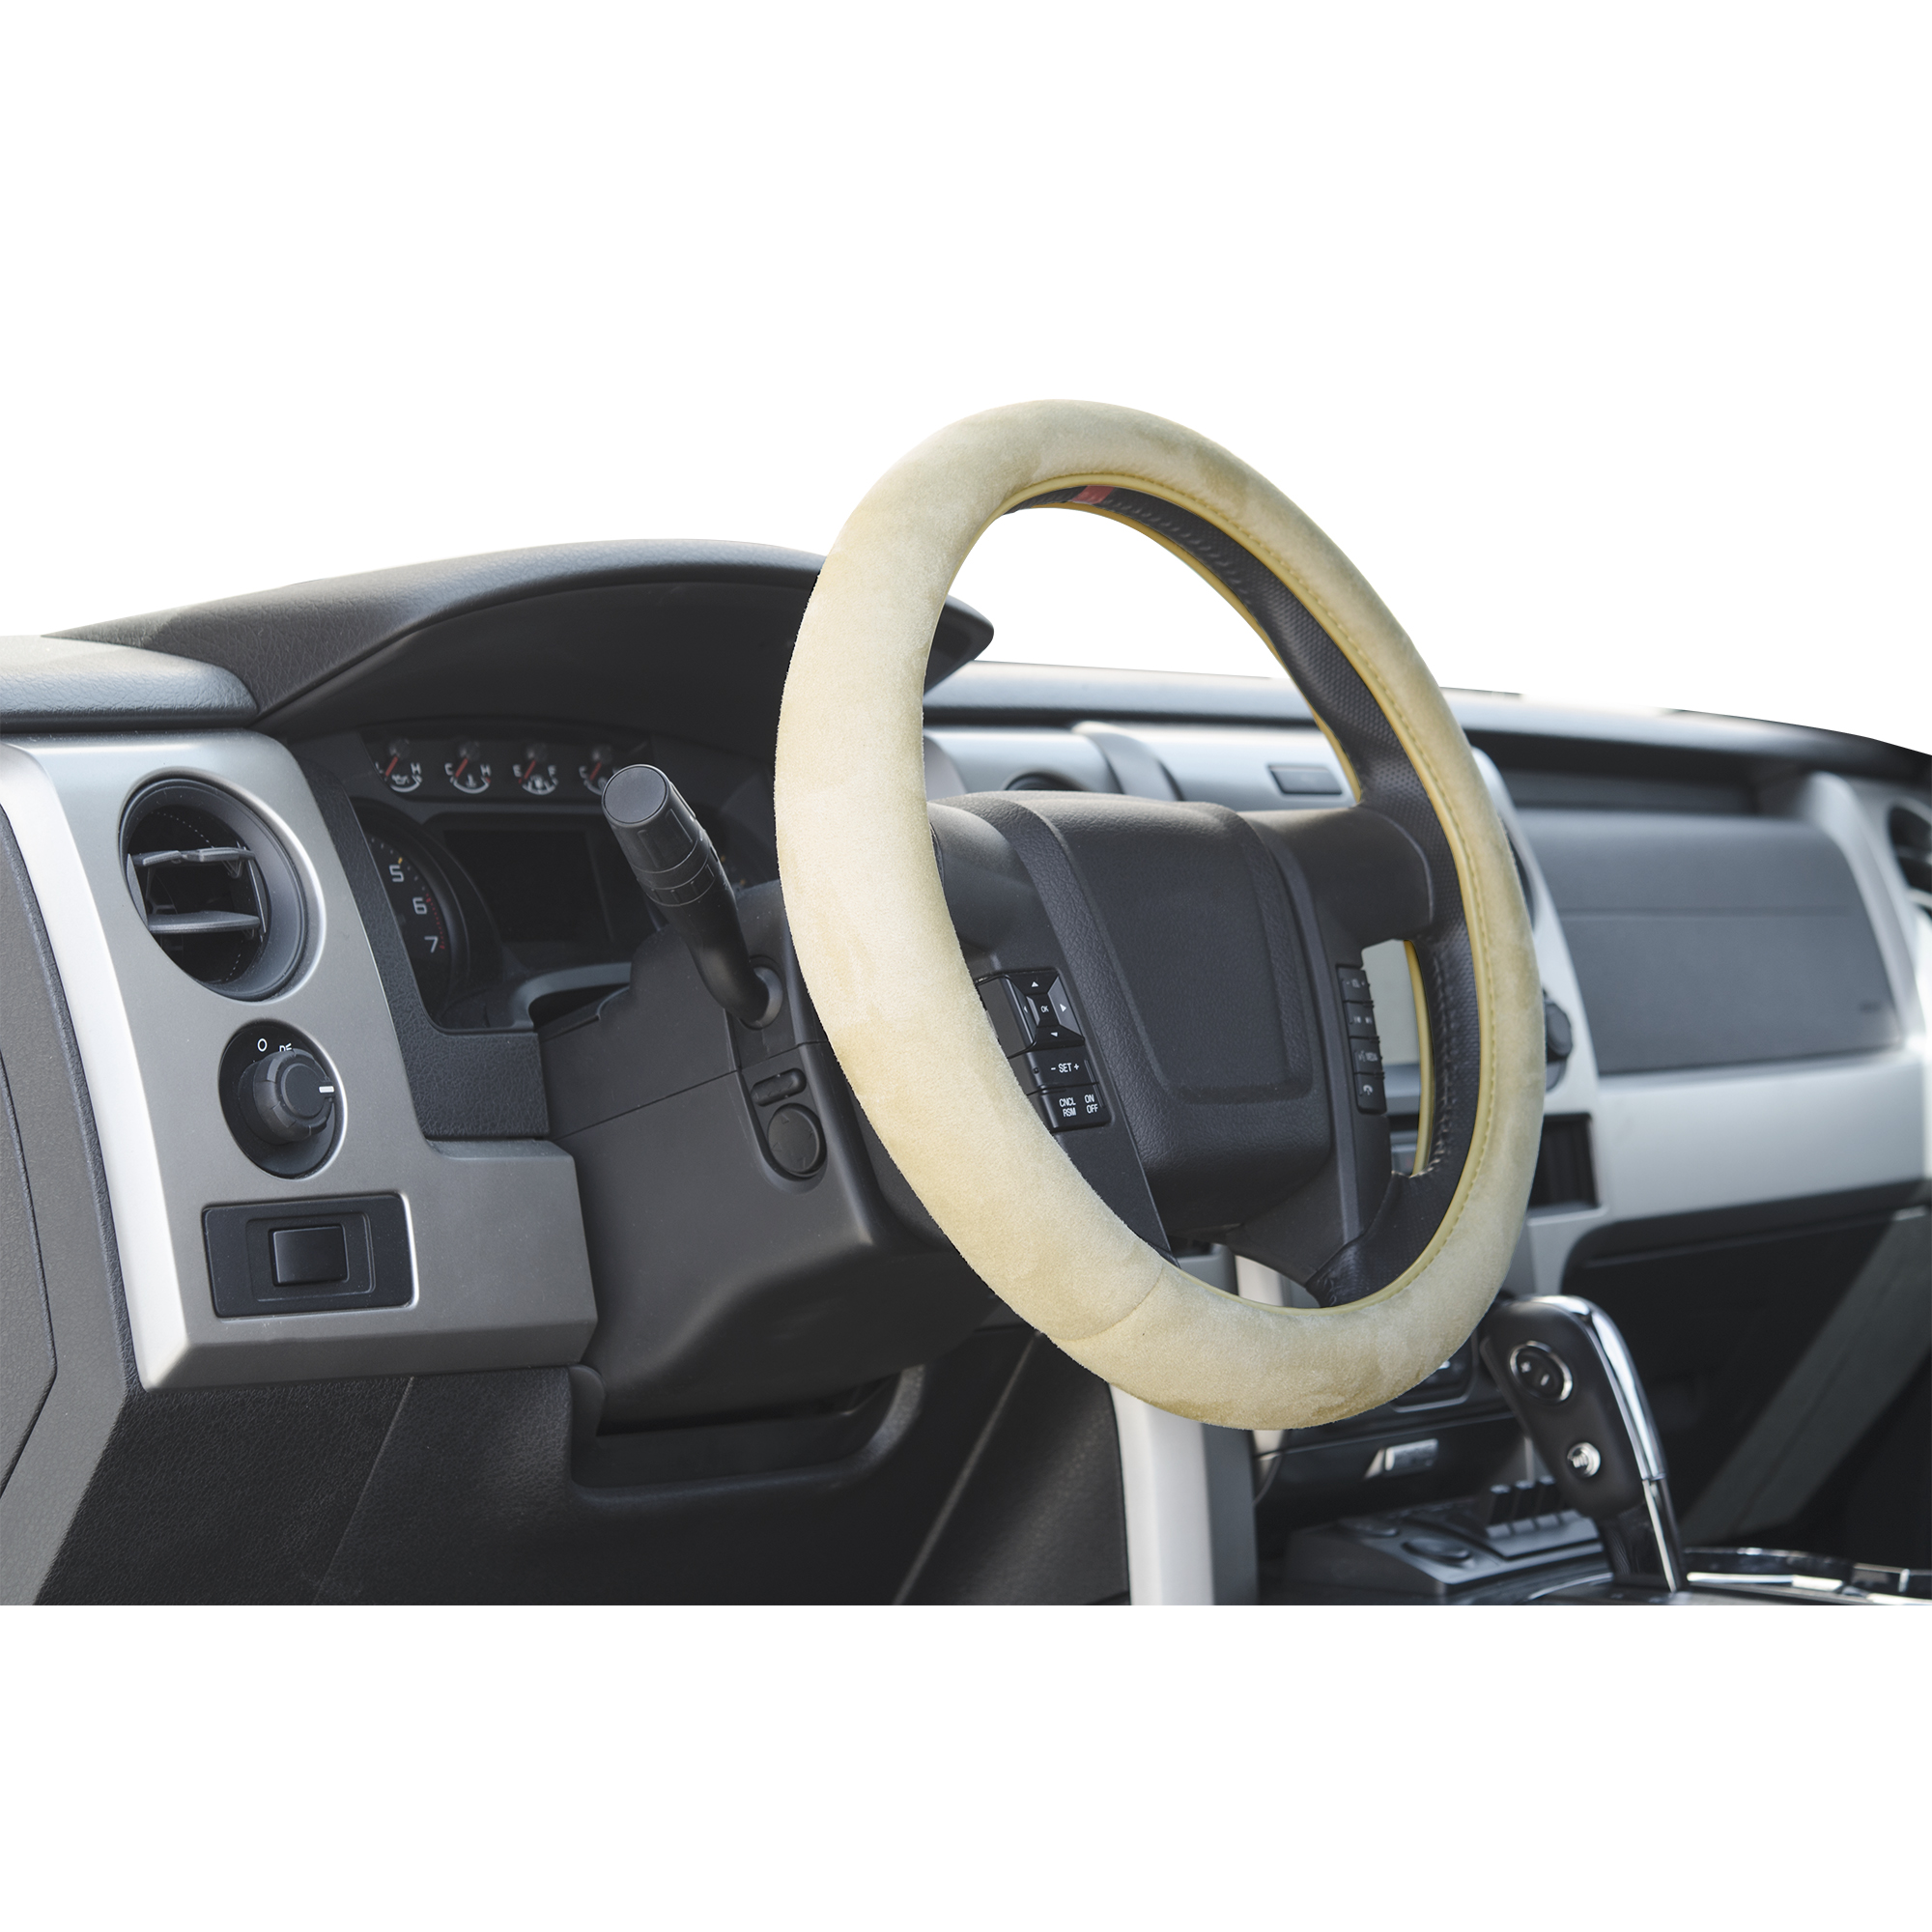 Beige Memory Foam steering wheel cover for trucks